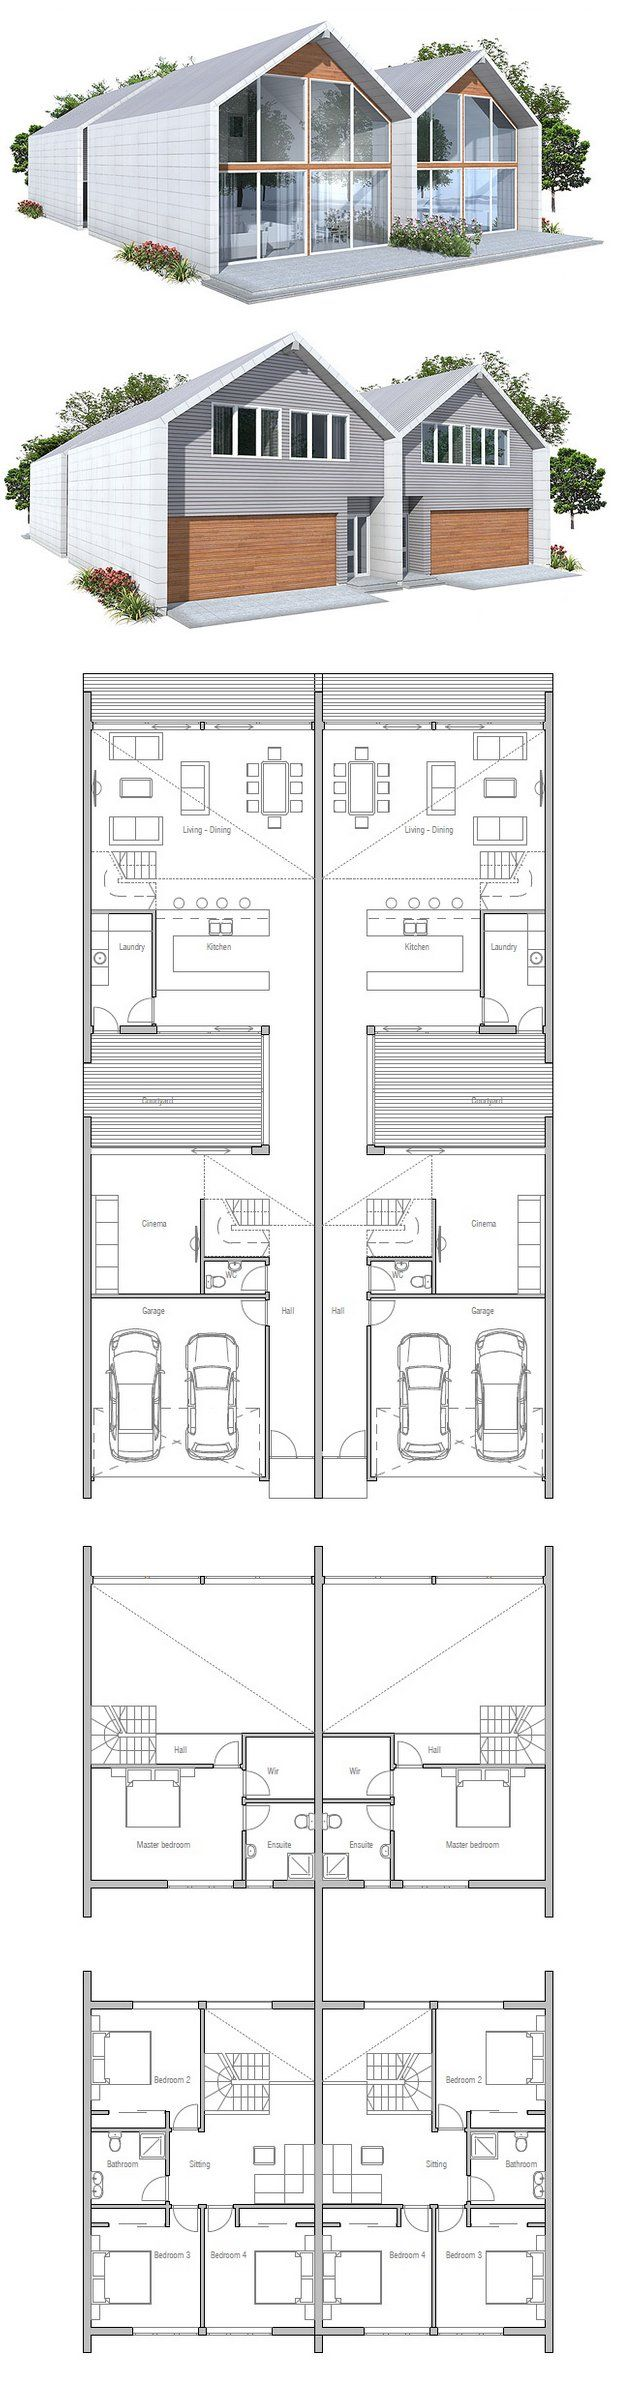 Duplex house plan to narrow lot 2 bed plans for Duplex house plans for narrow lots